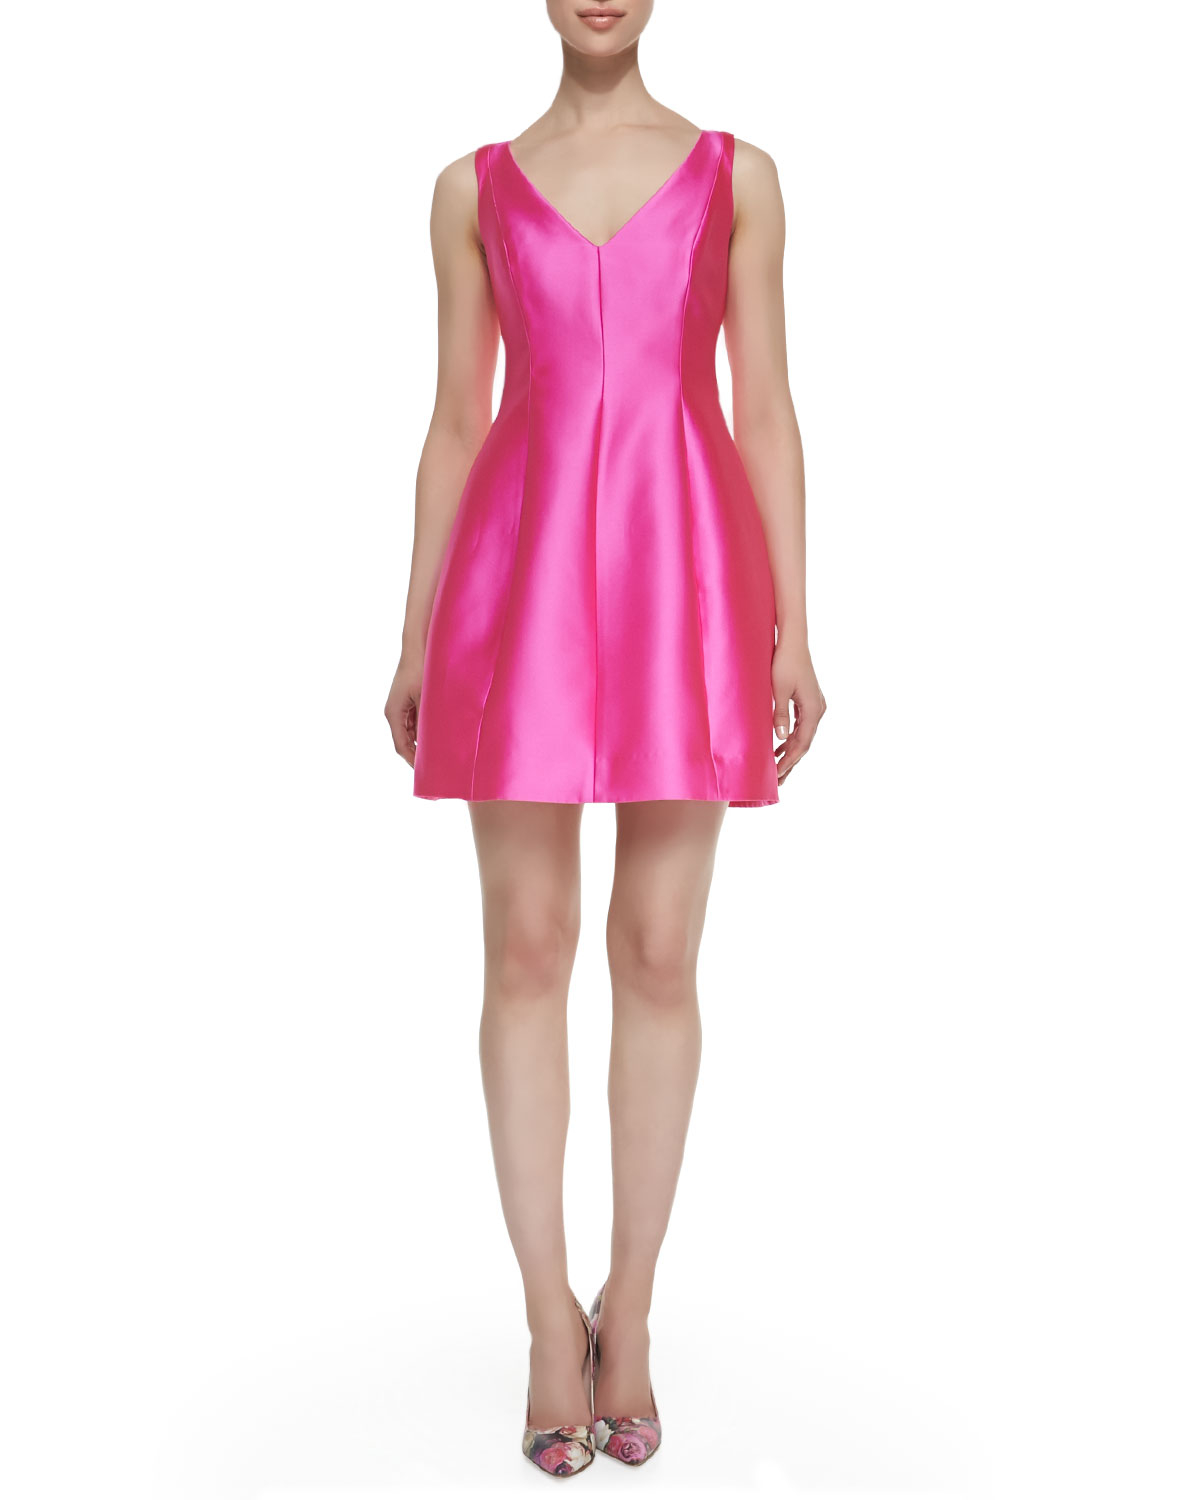 kate spade sleeveless structured mini dress in pink rio pink lyst. Black Bedroom Furniture Sets. Home Design Ideas